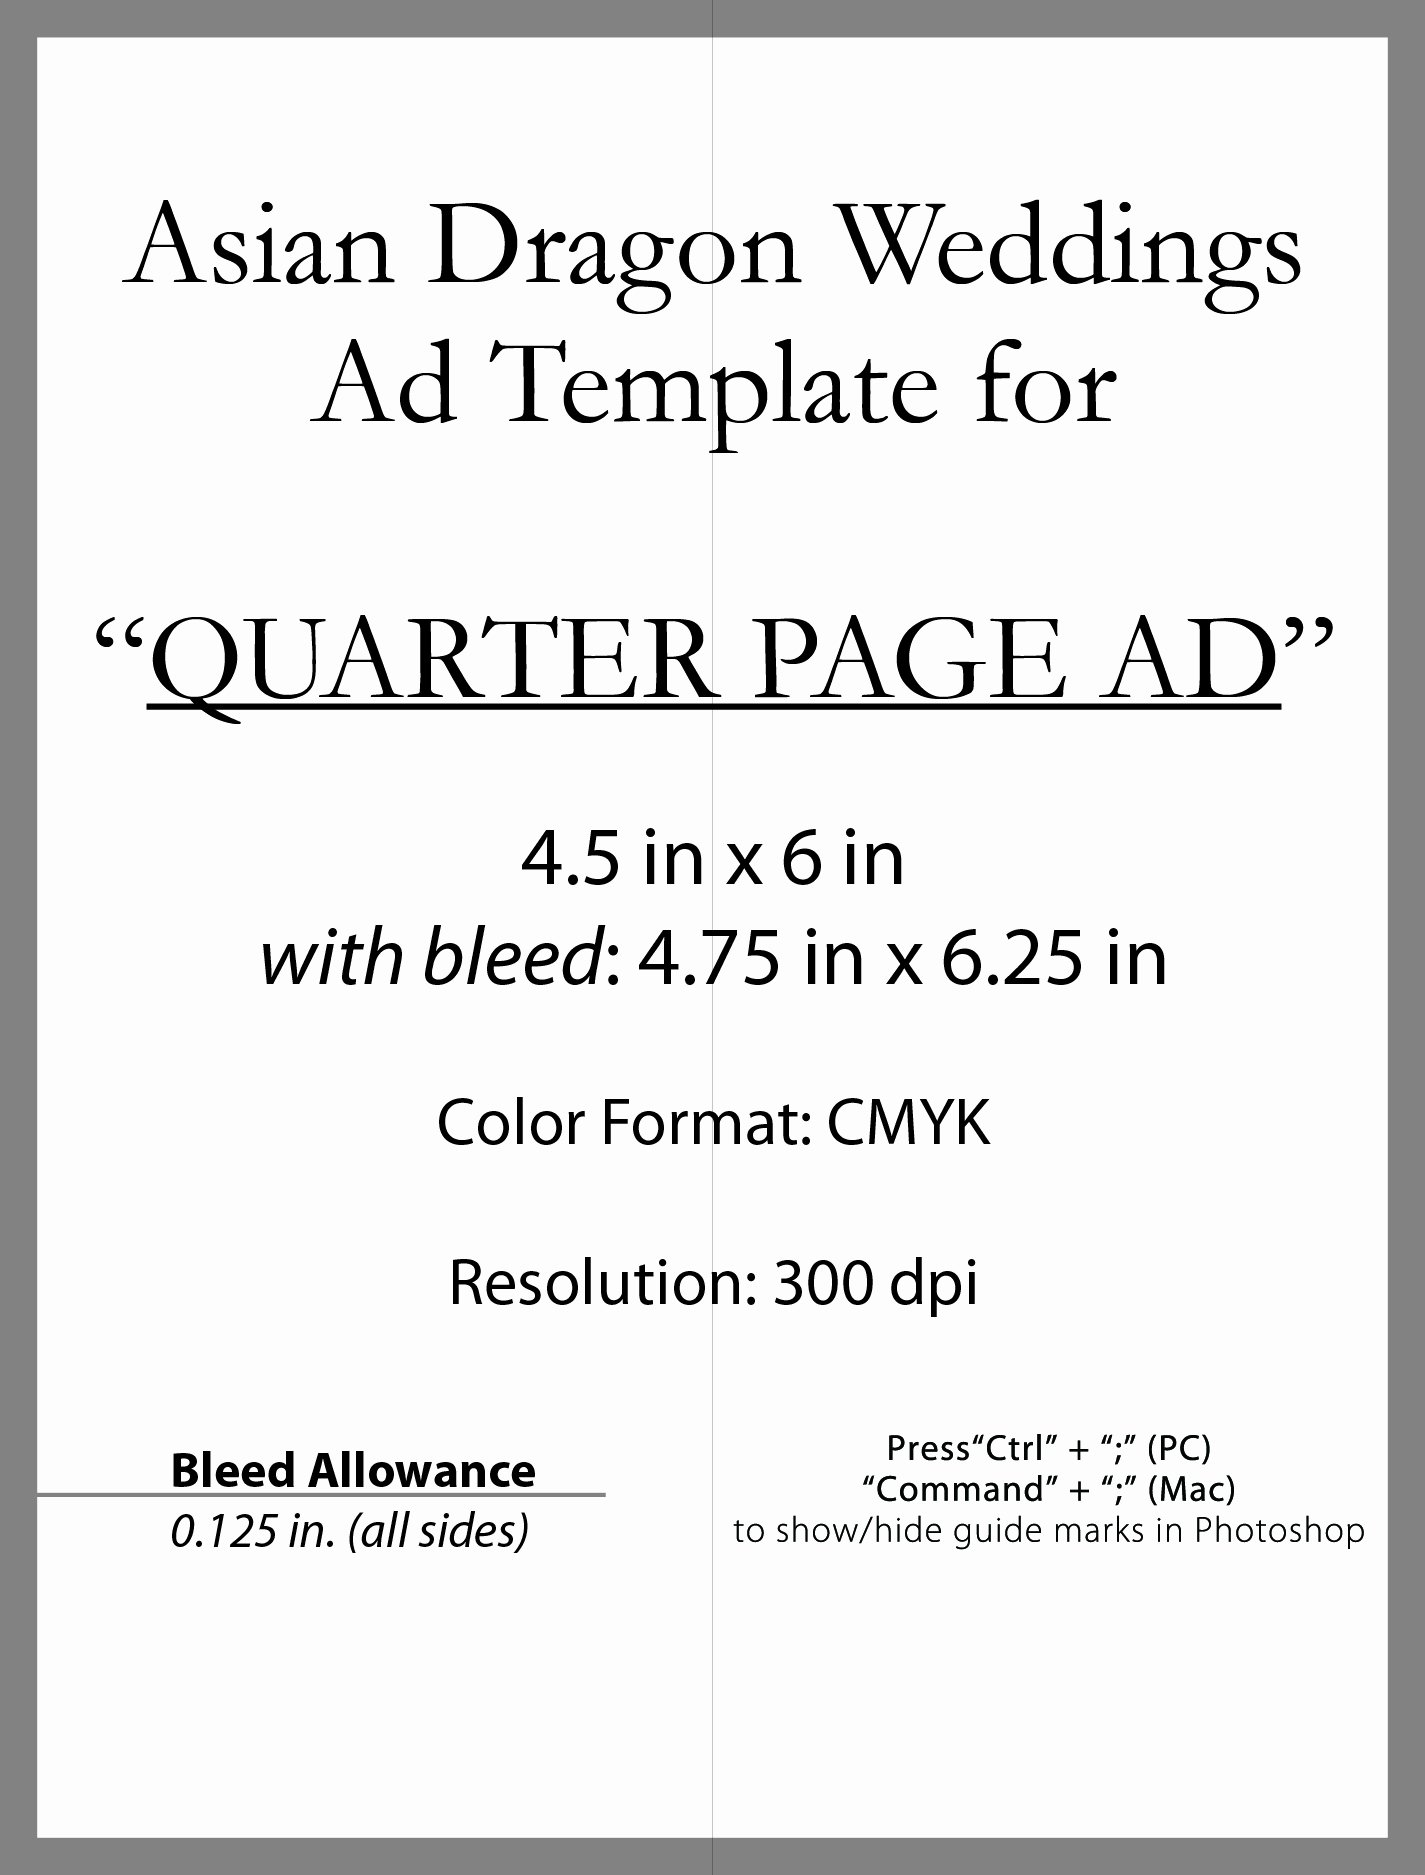 Quarter Page Ad Template New asian Dragon Weddings